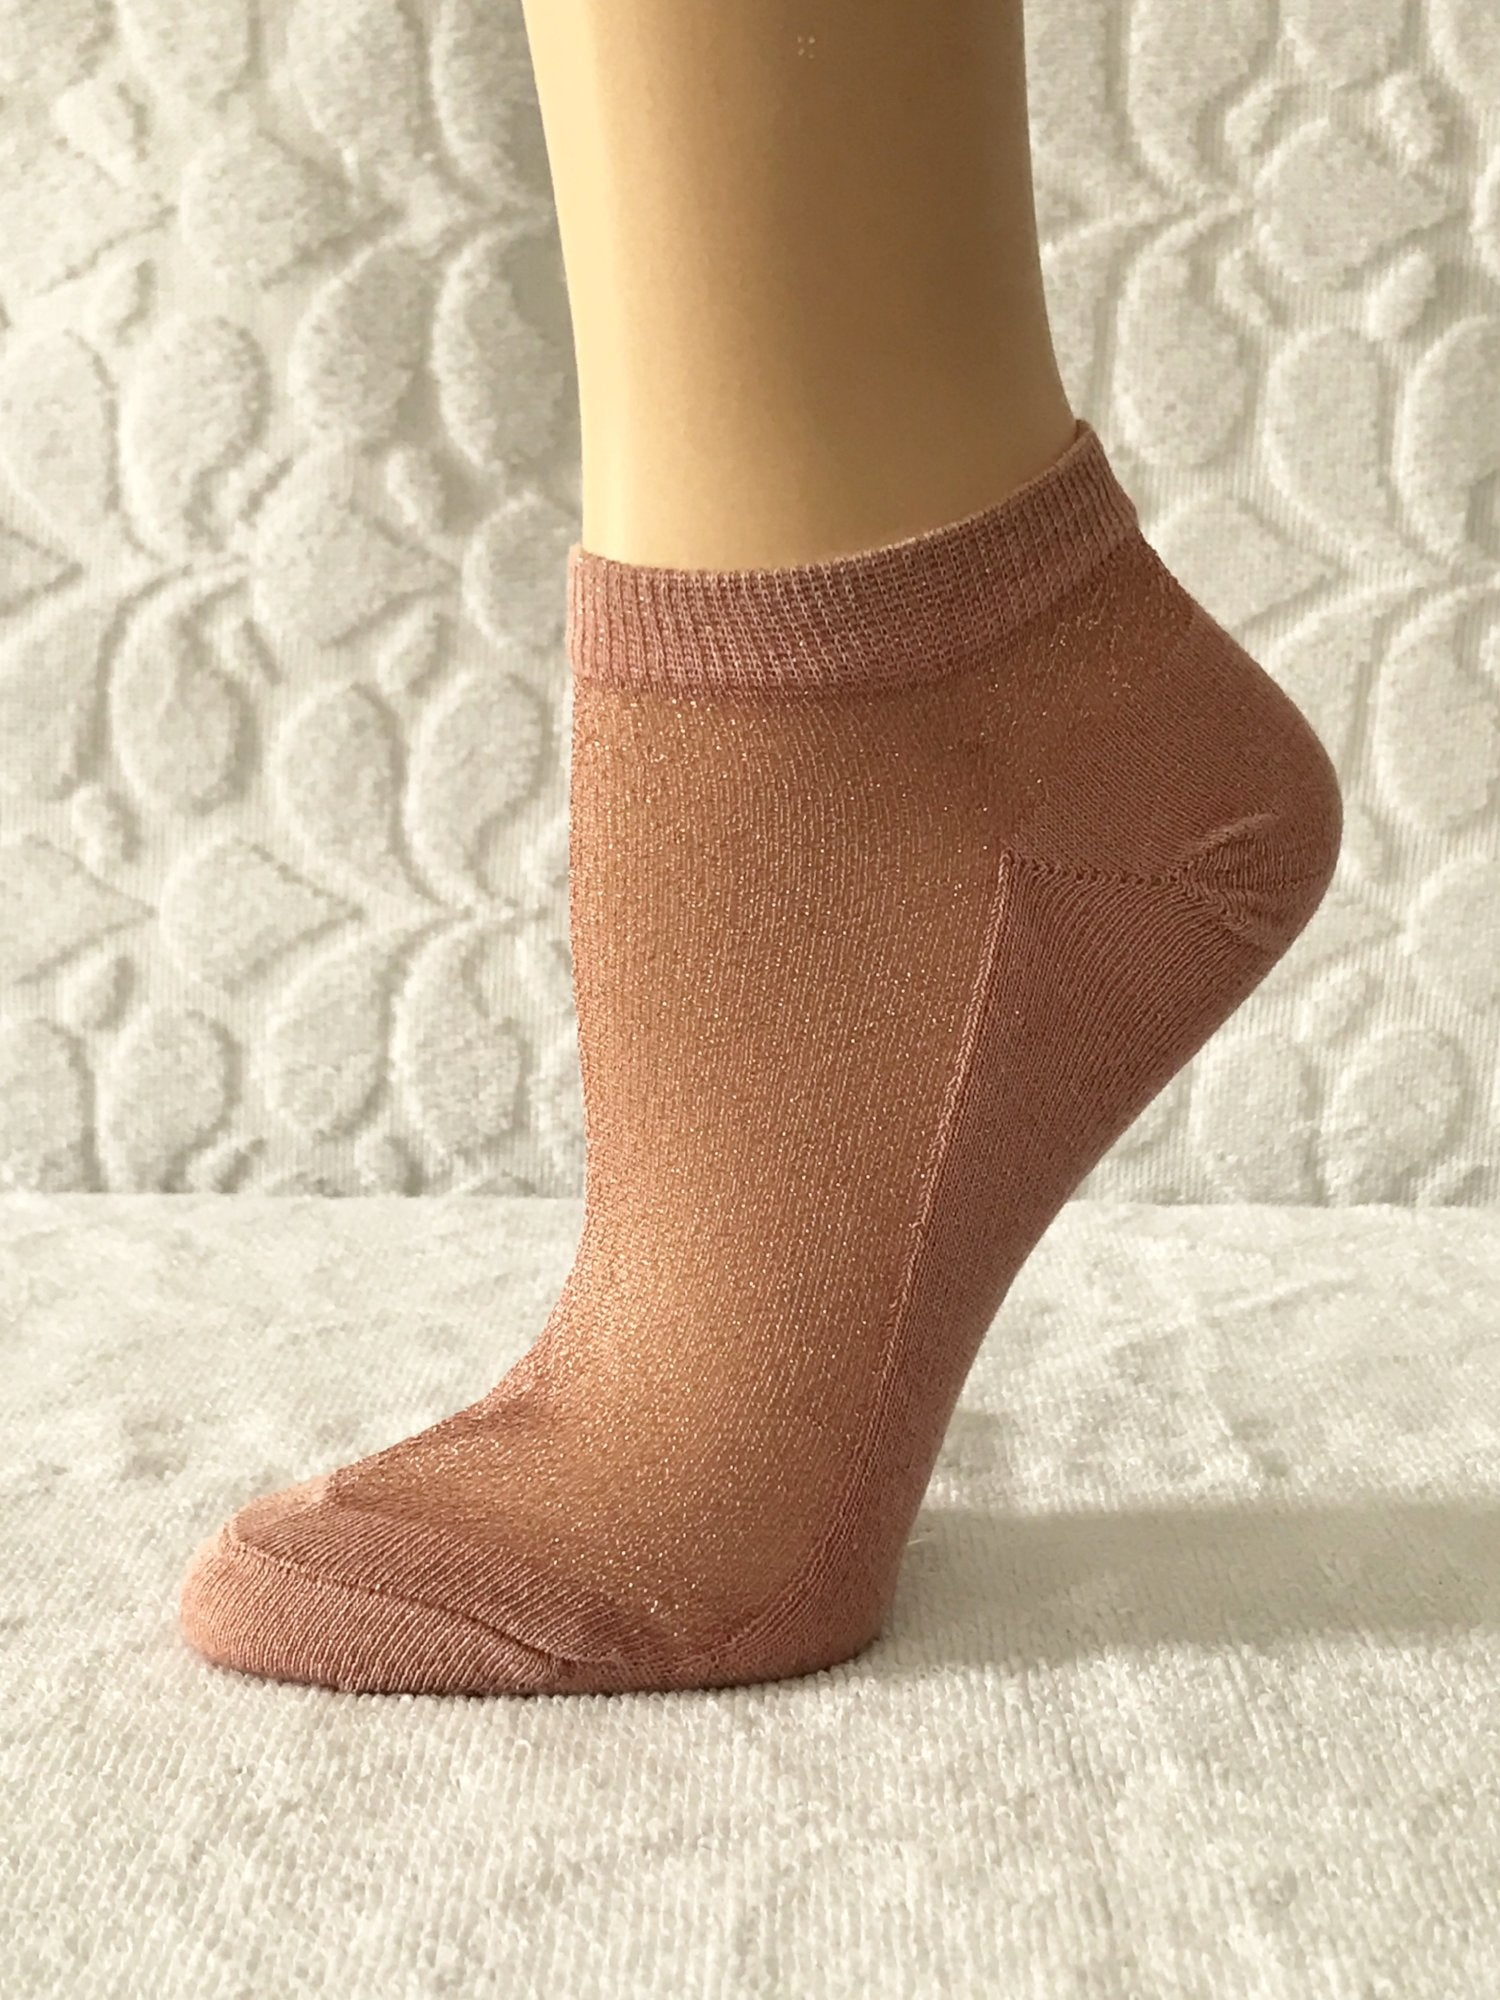 Glowing Pink Ankle Sheer Socks - Global Trendz Fashion®